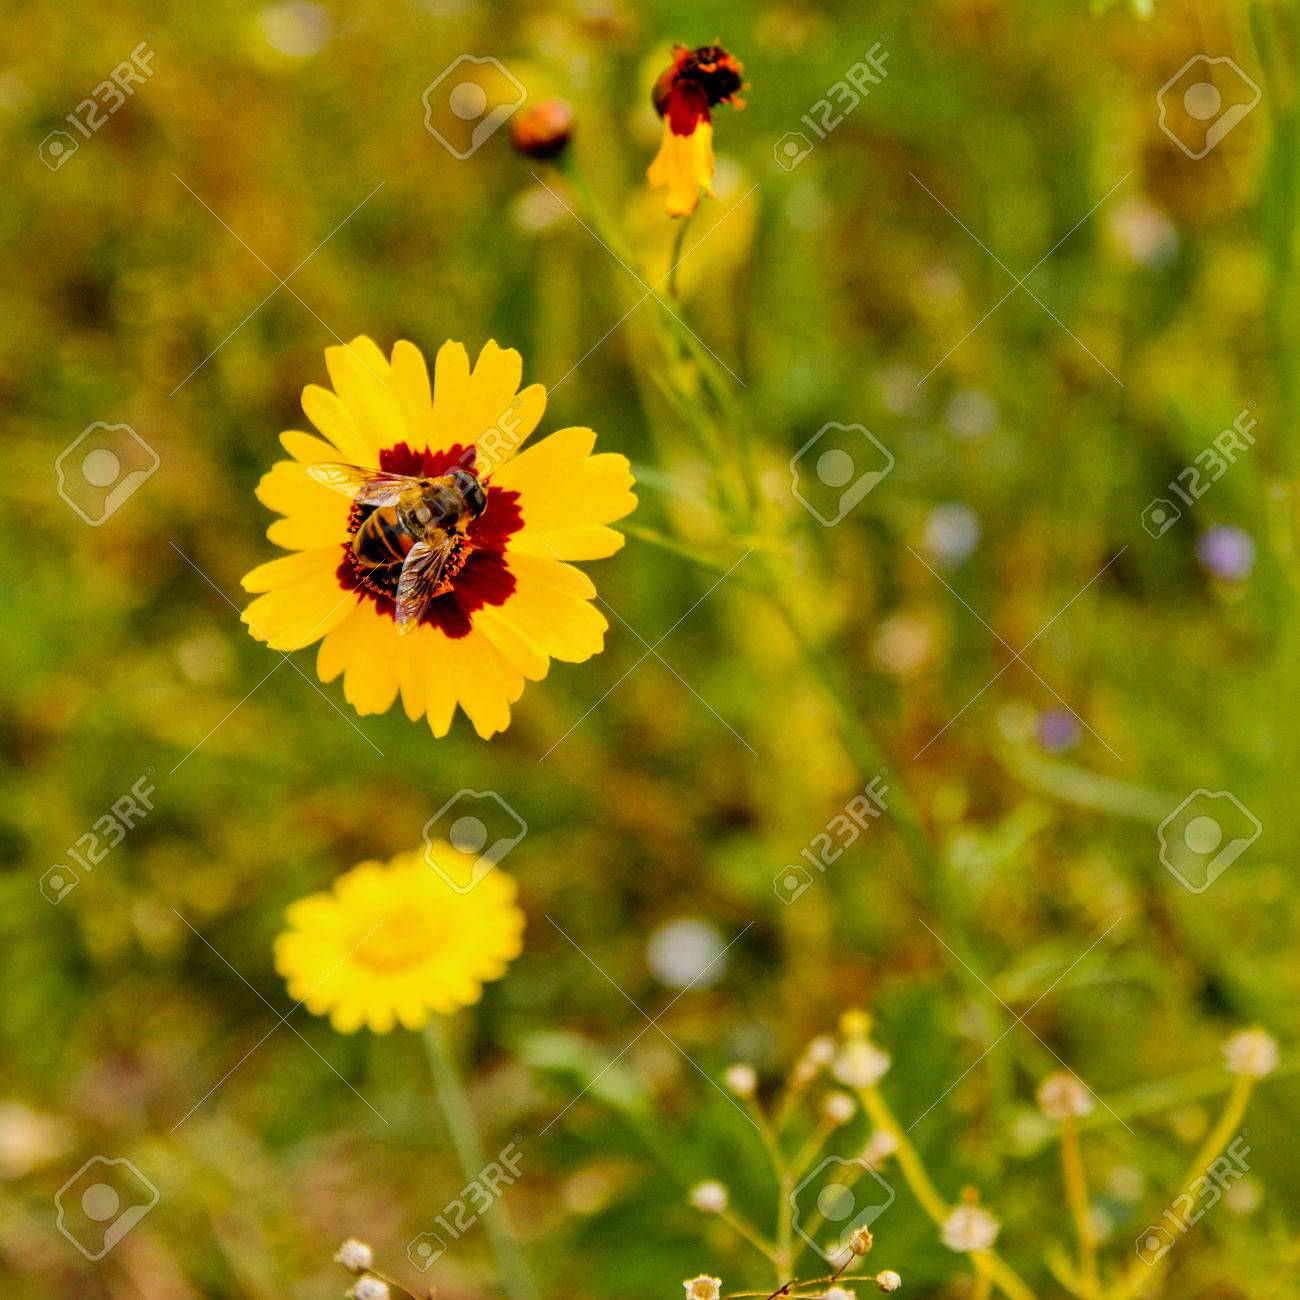 Yellow Flower With Dark Centre And Insect In Green Field